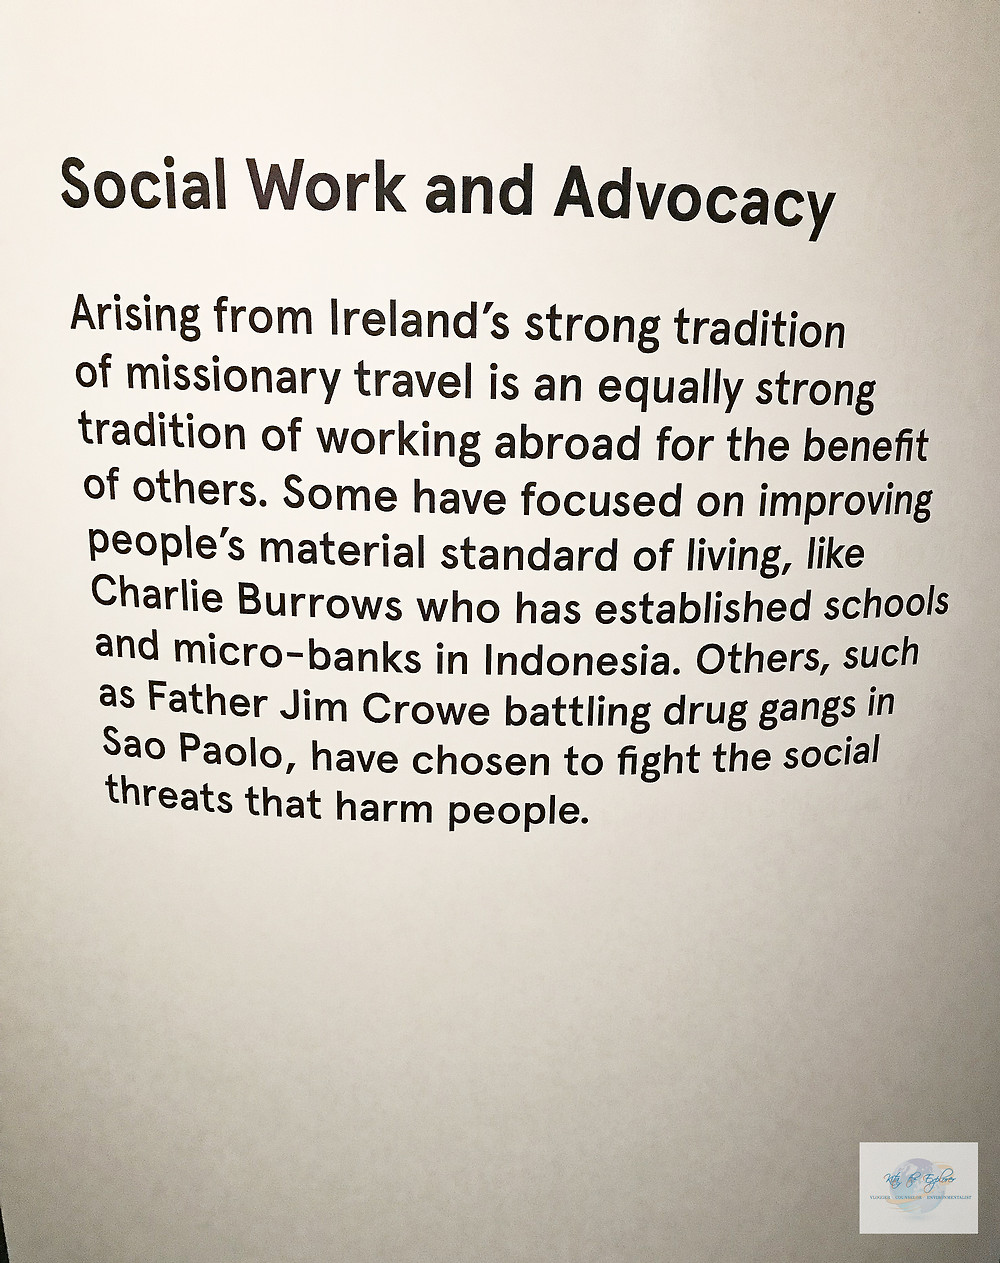 ABOUT SOCIAL WORK IN IRELAND